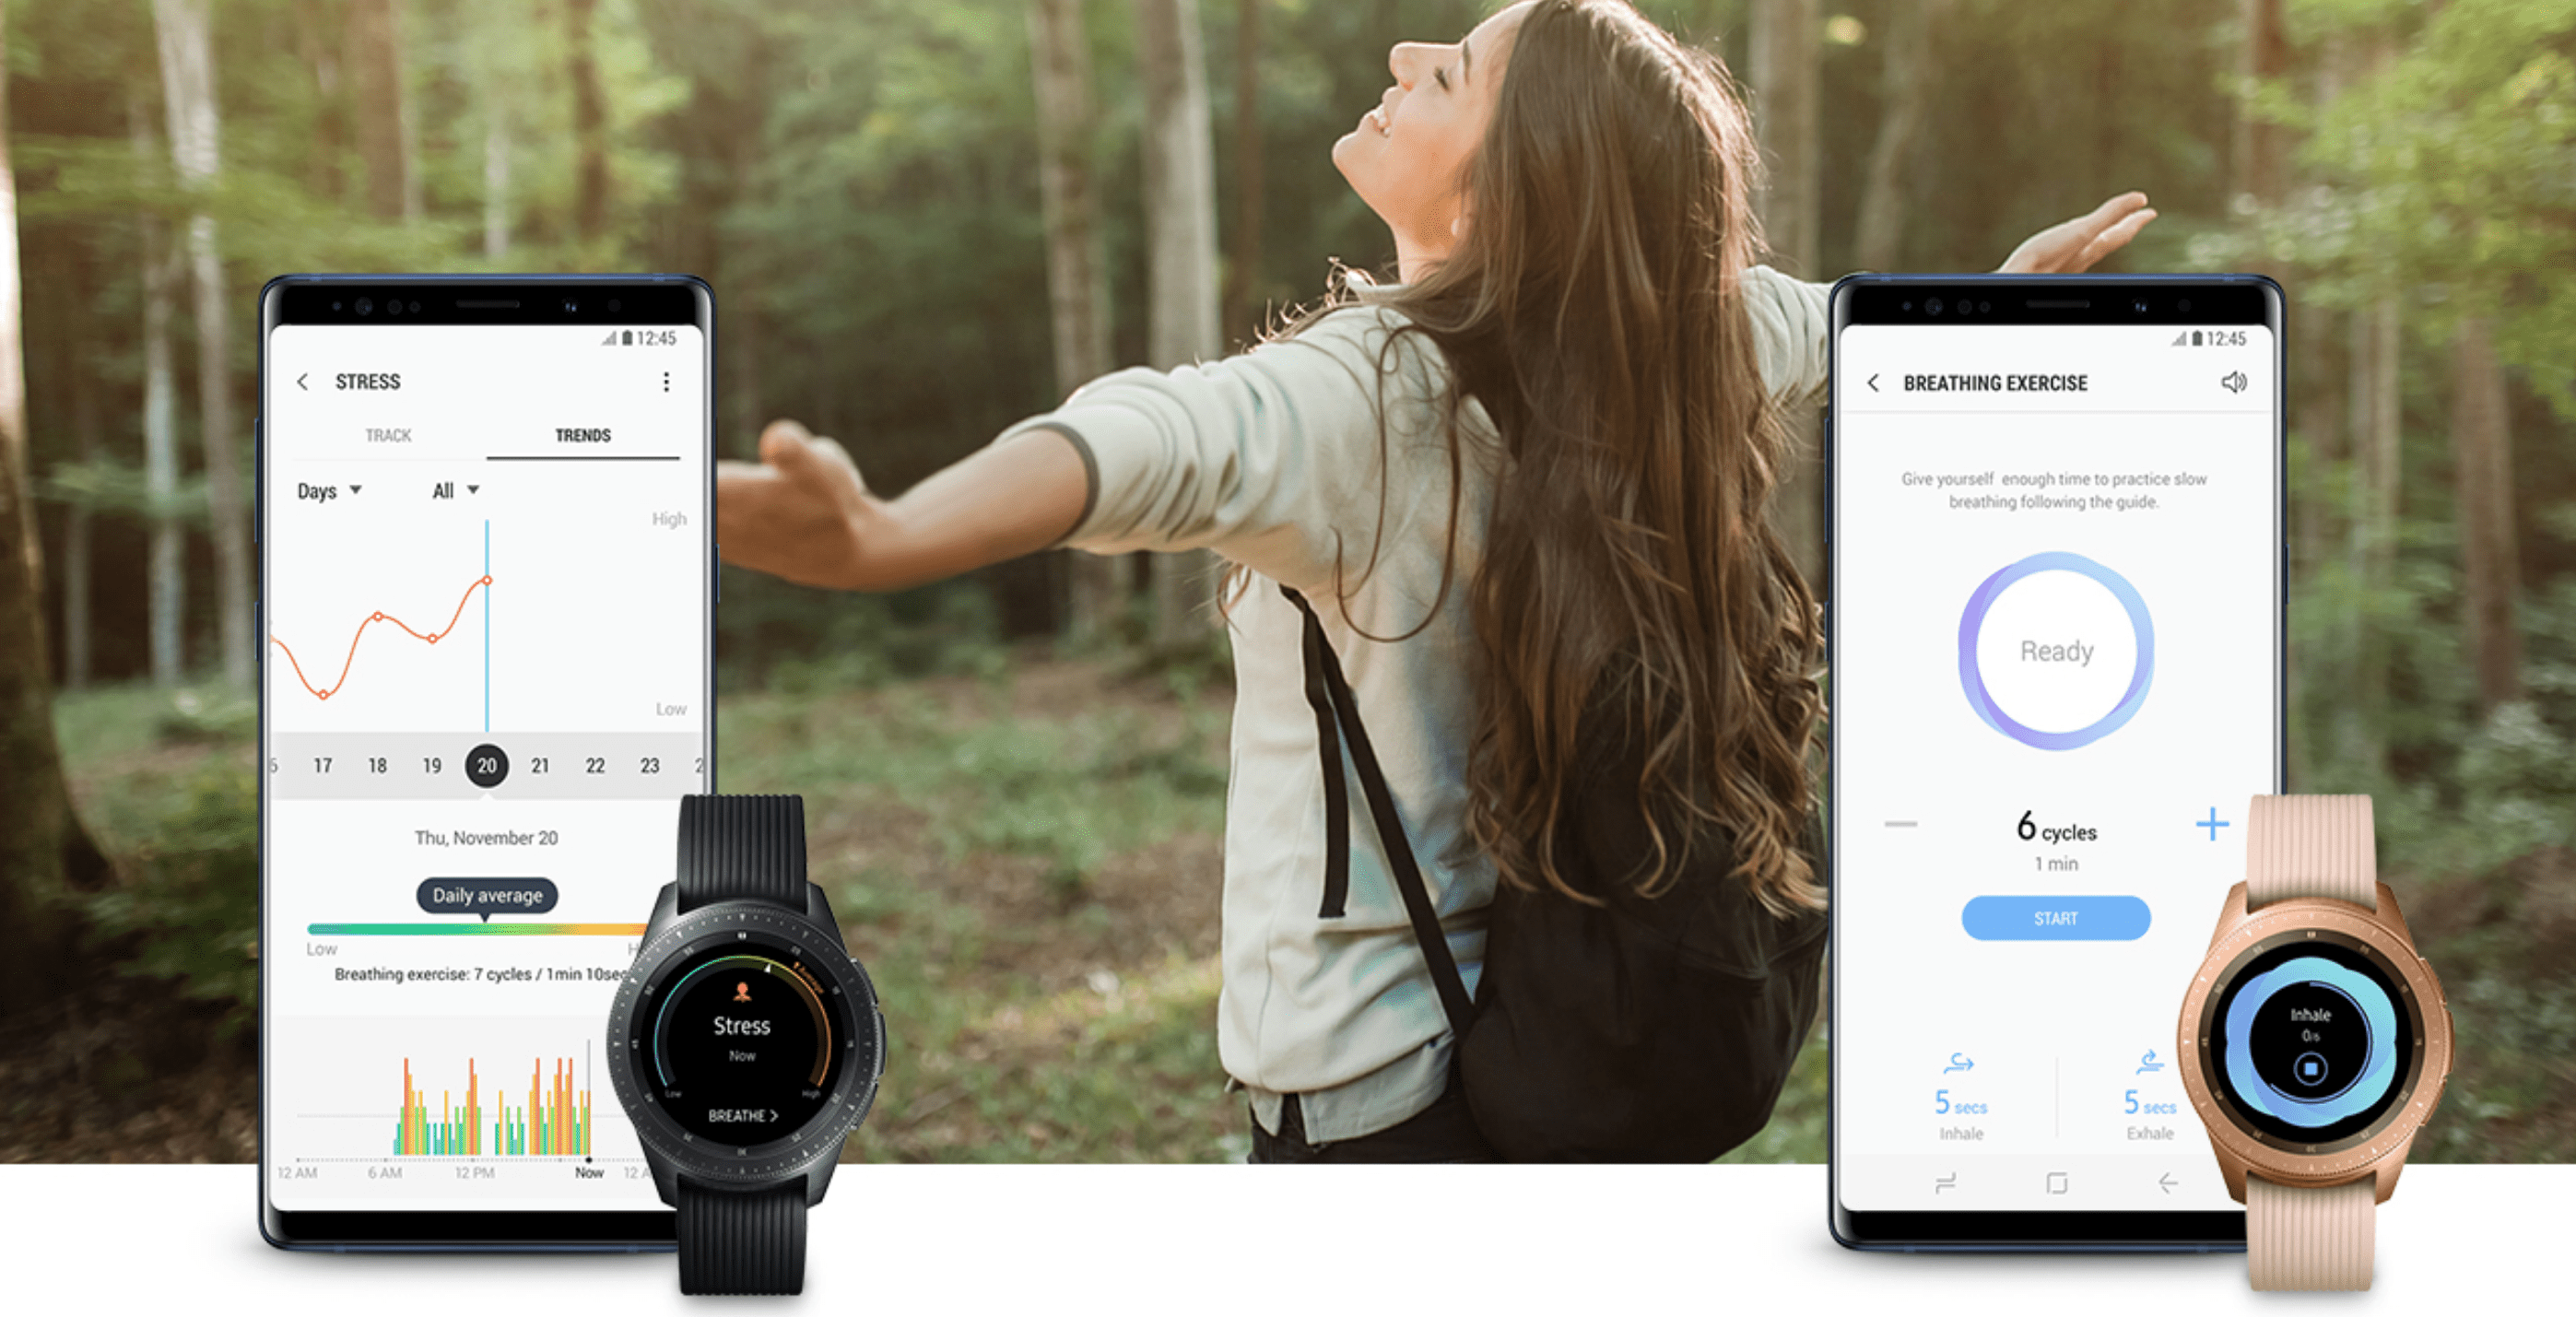 The 5 Best Galaxy Watch Features including phone calls and texts